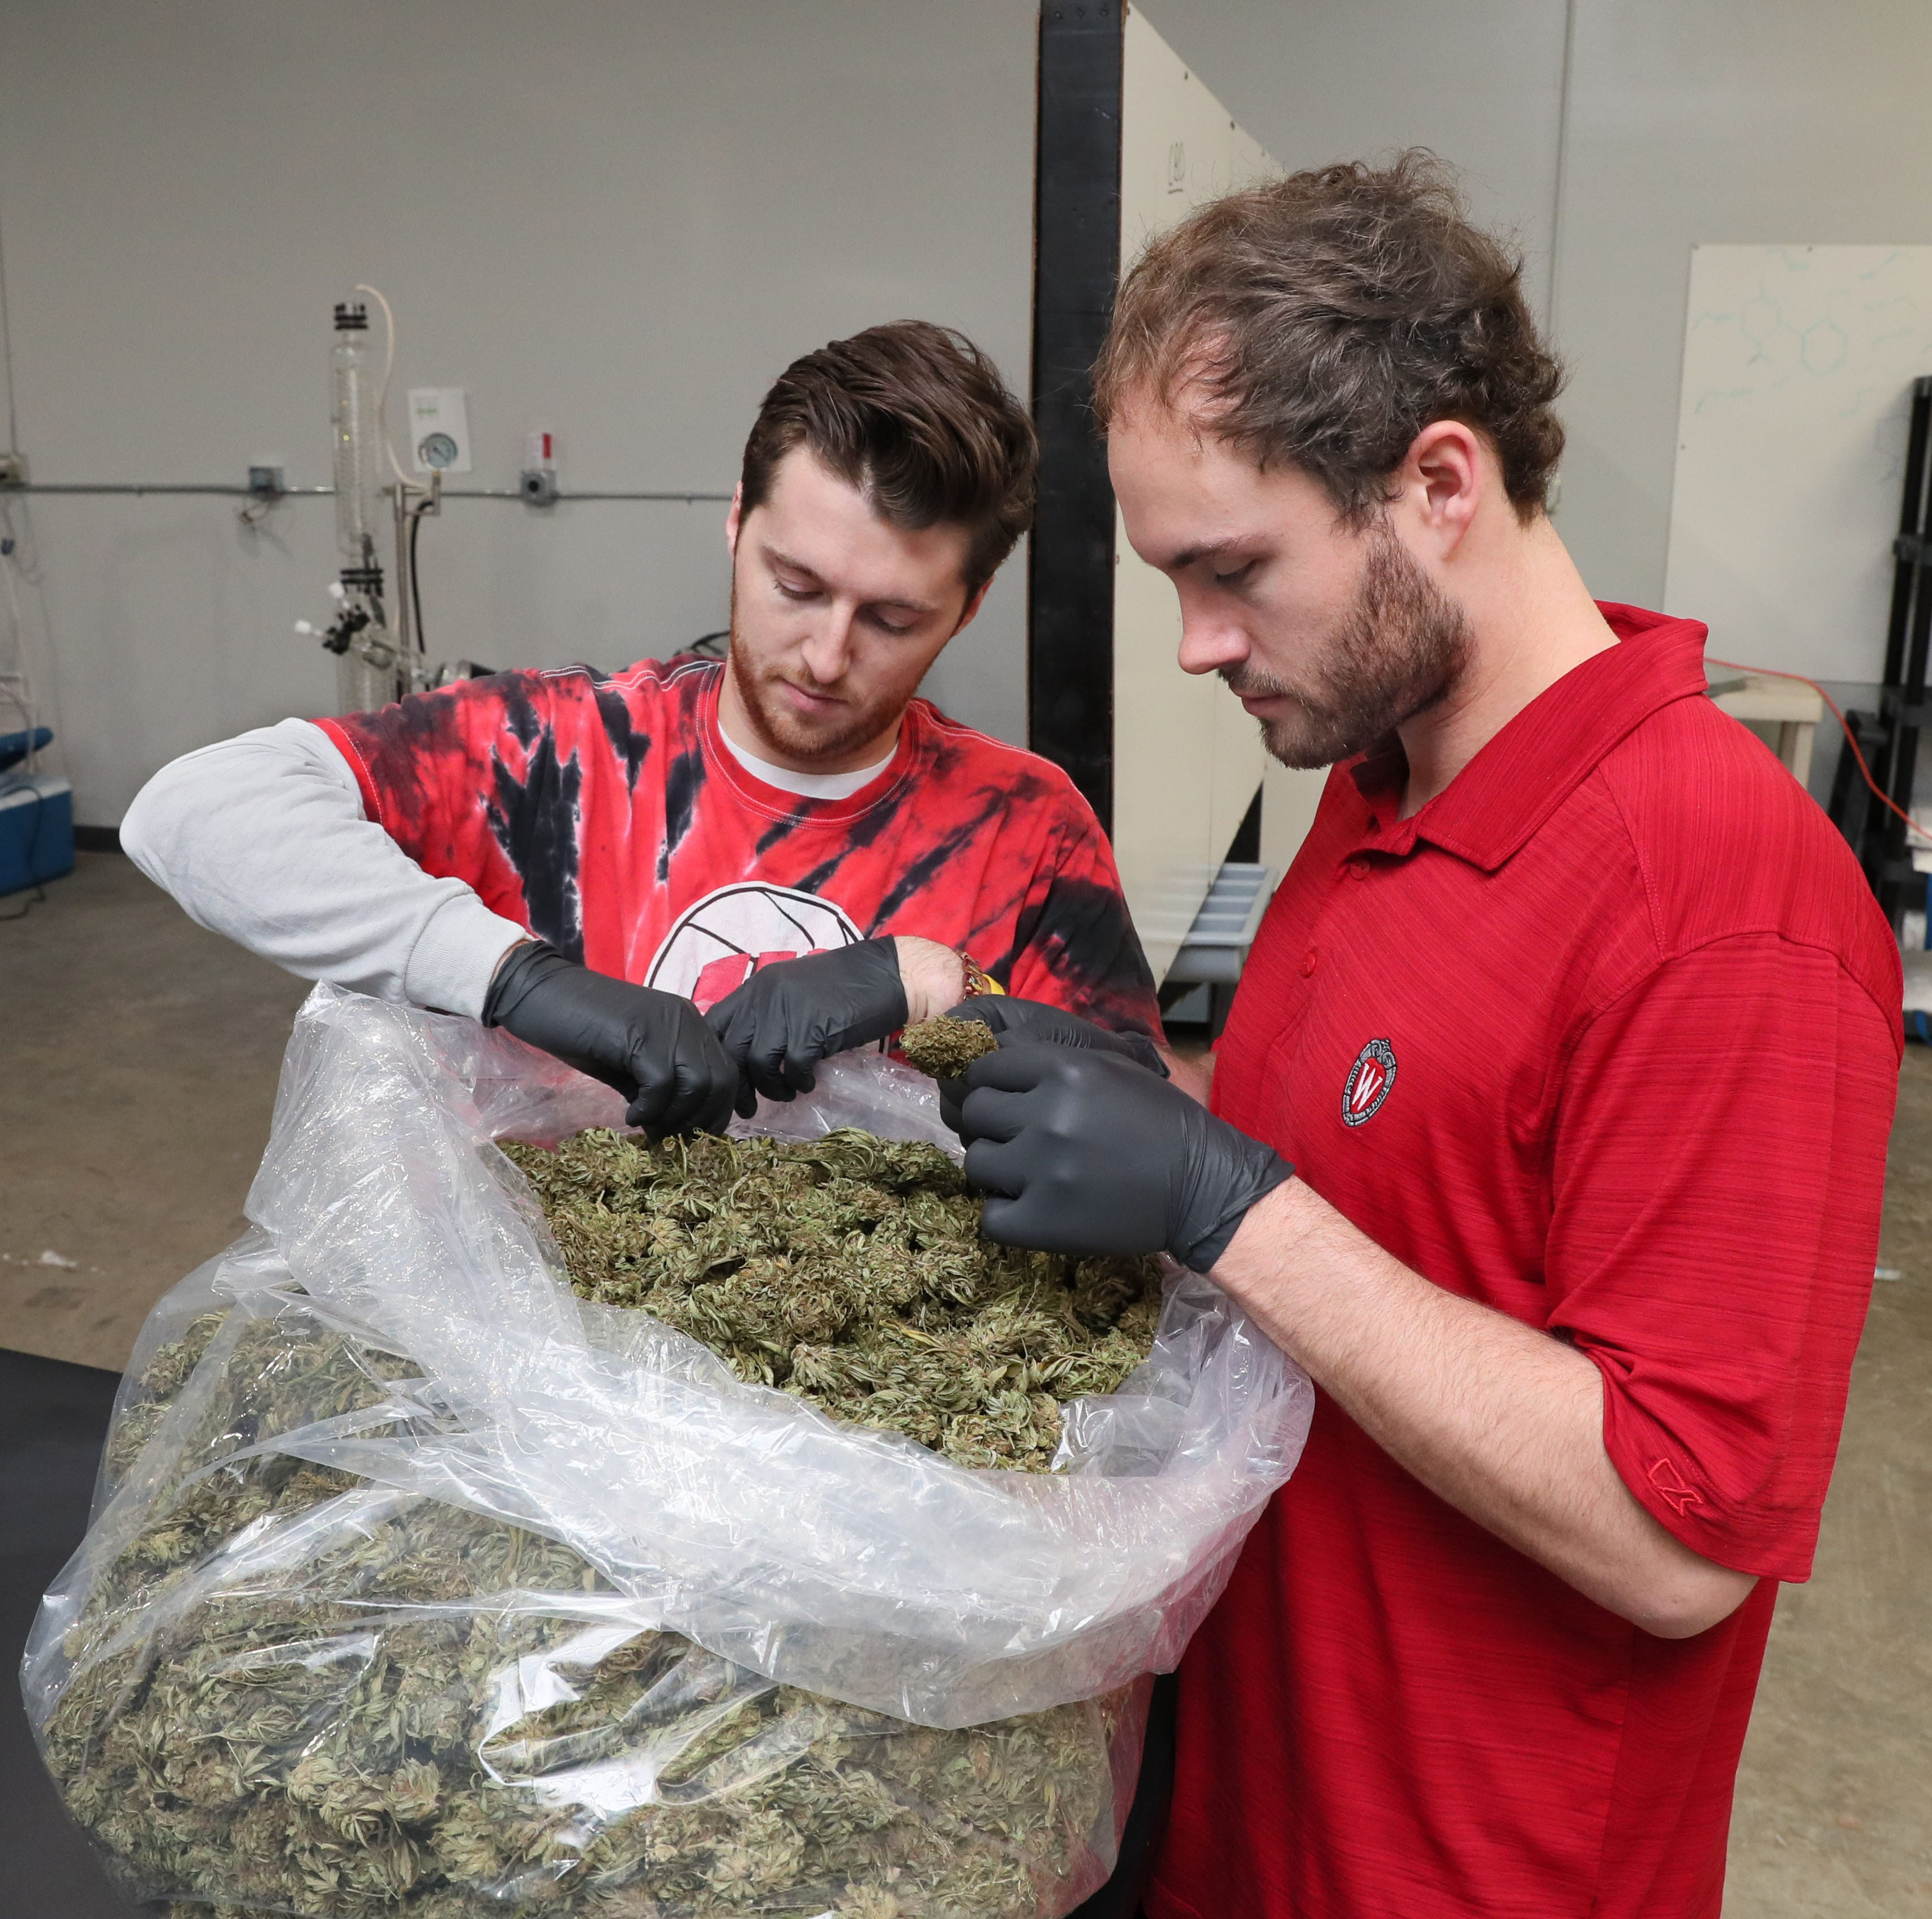 CBD 'gold rush' could mean big business for Wisconsin's hemp industry